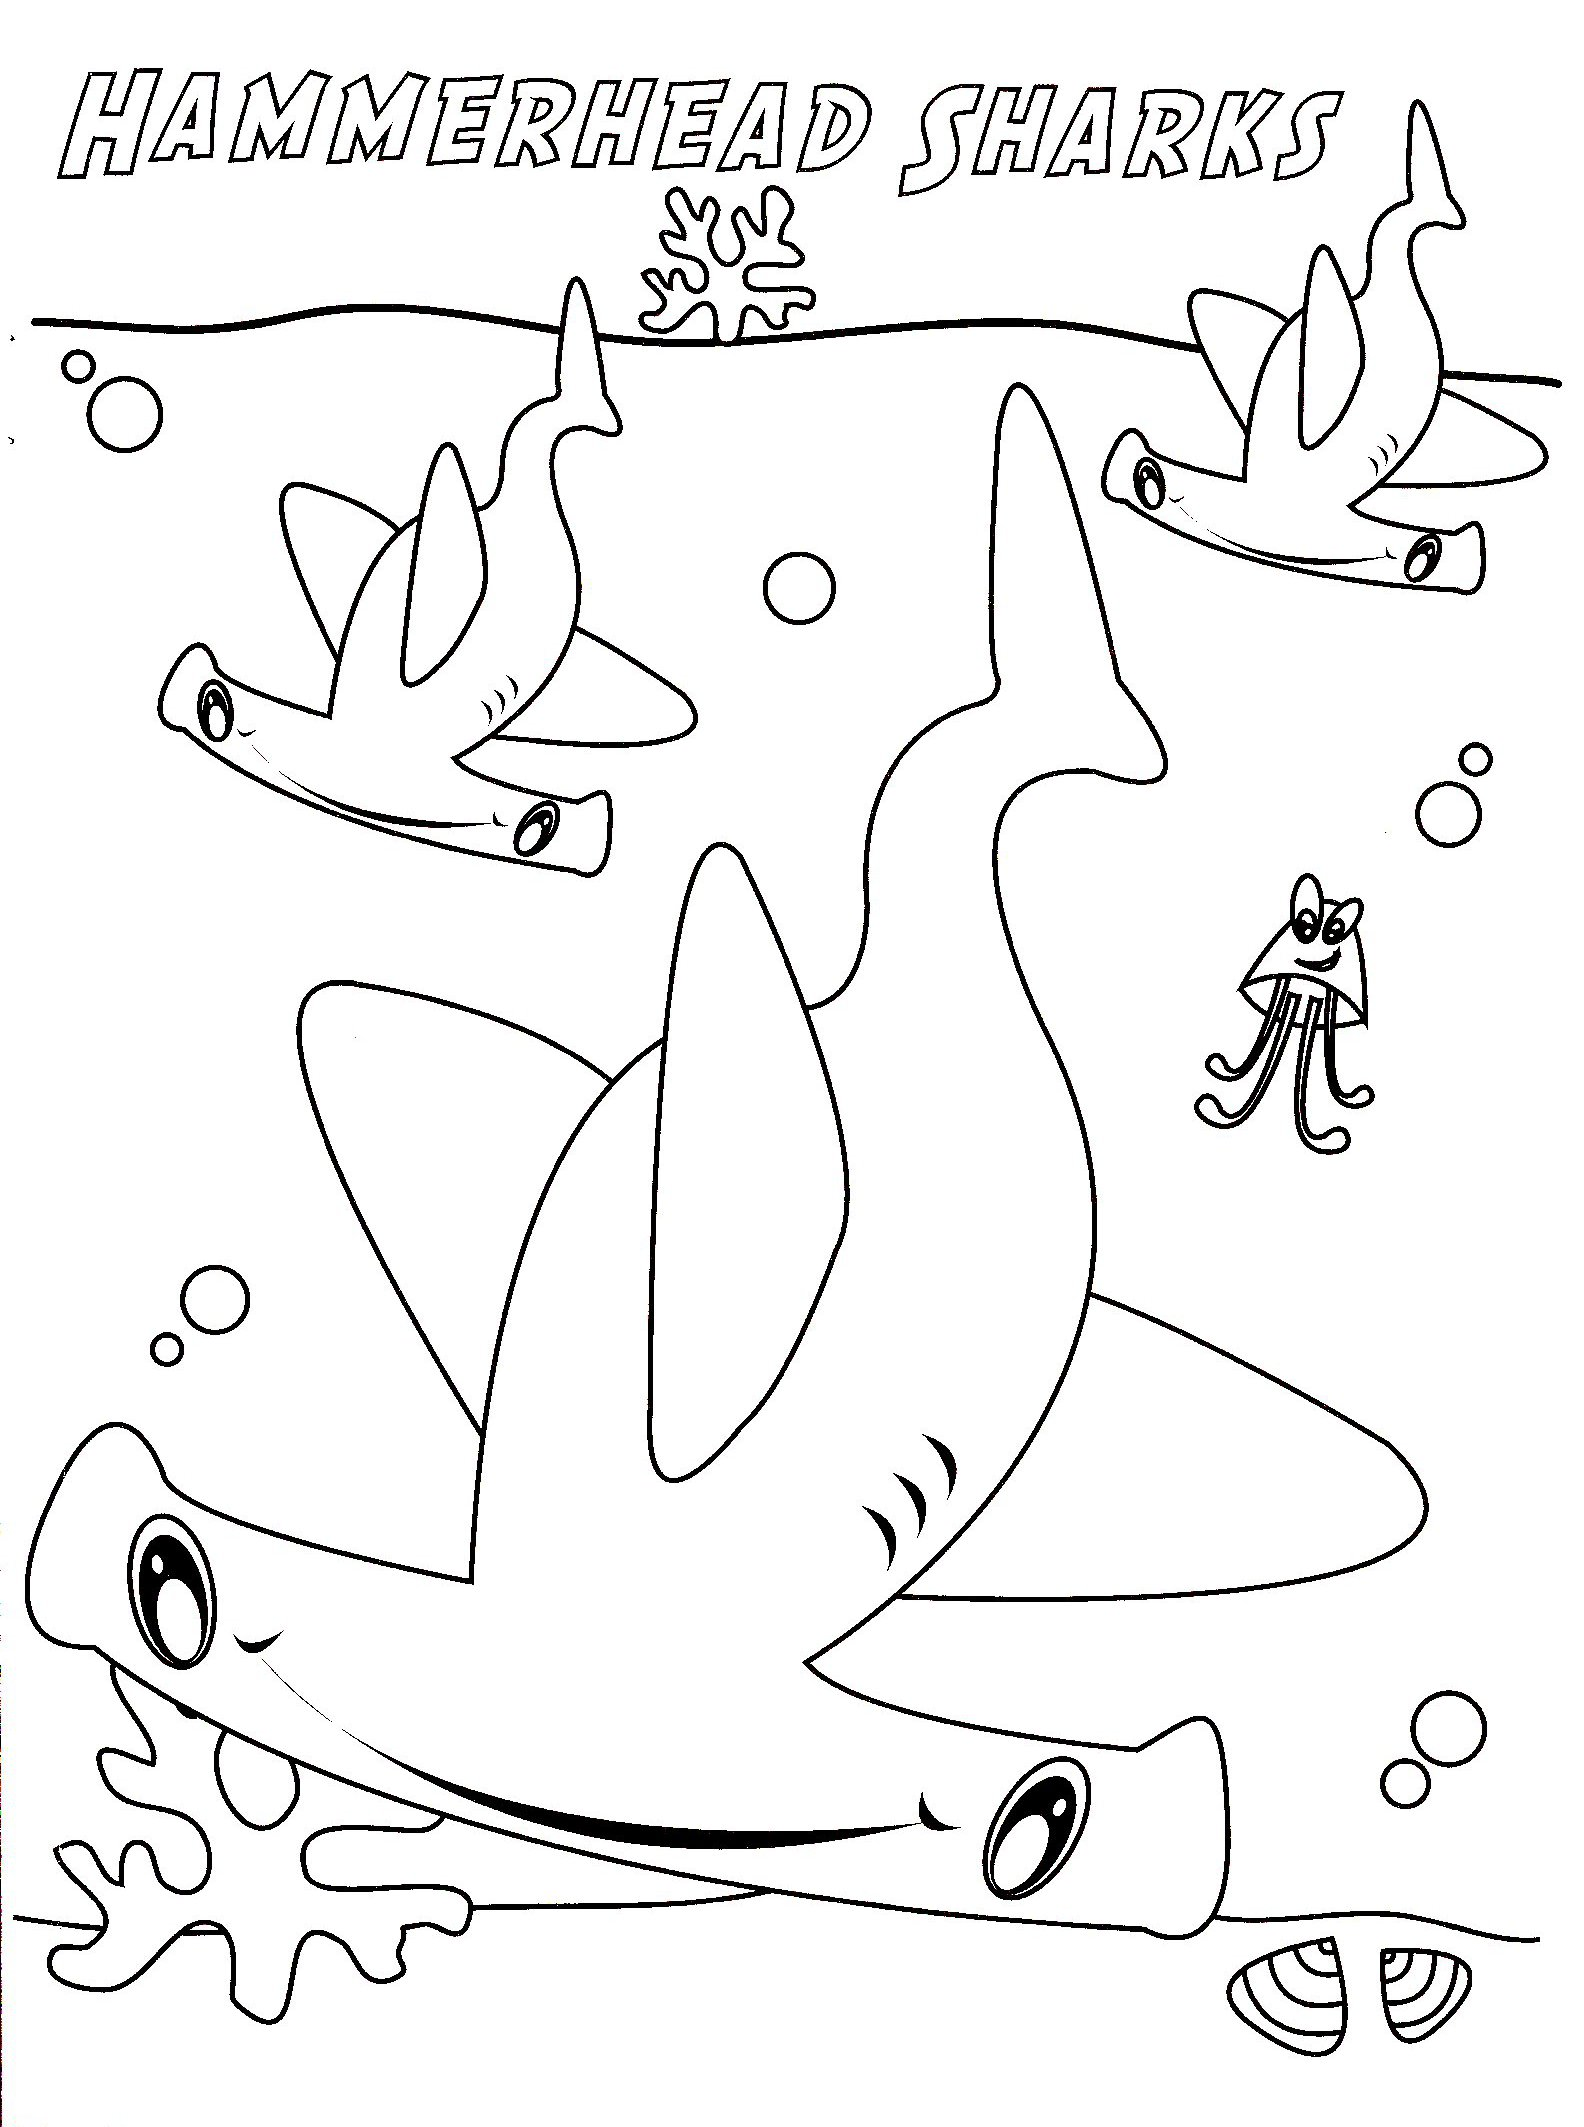 1584x2127 hammerhead shark coloring pages